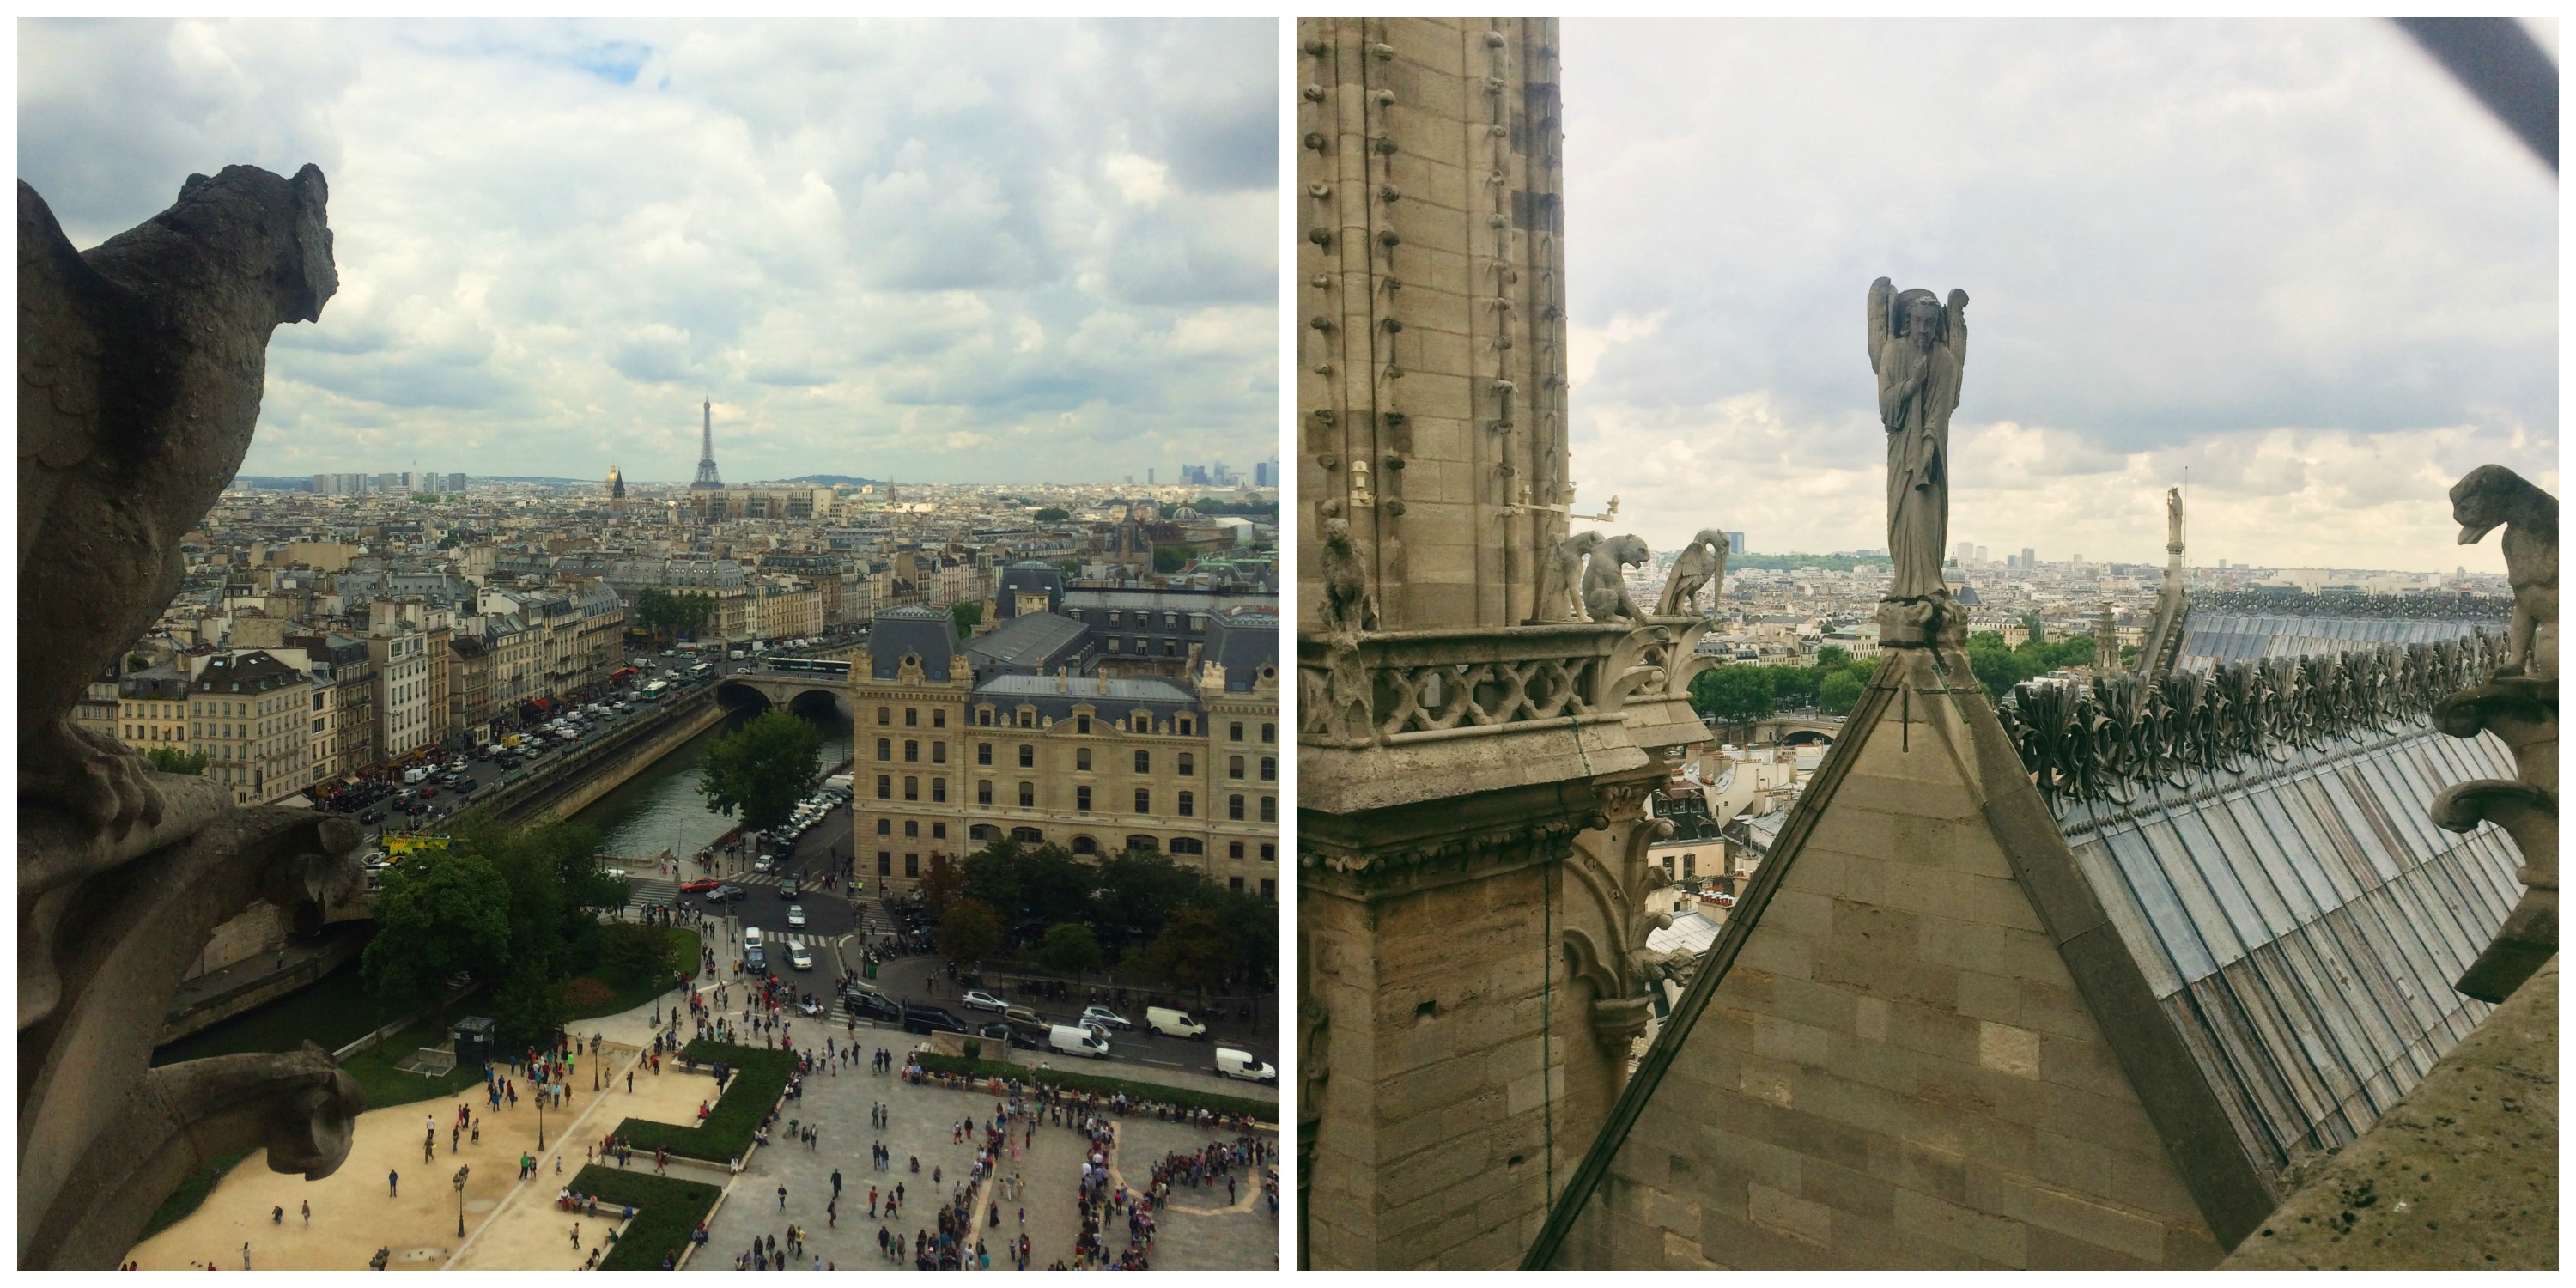 At the Top of Notre Dame